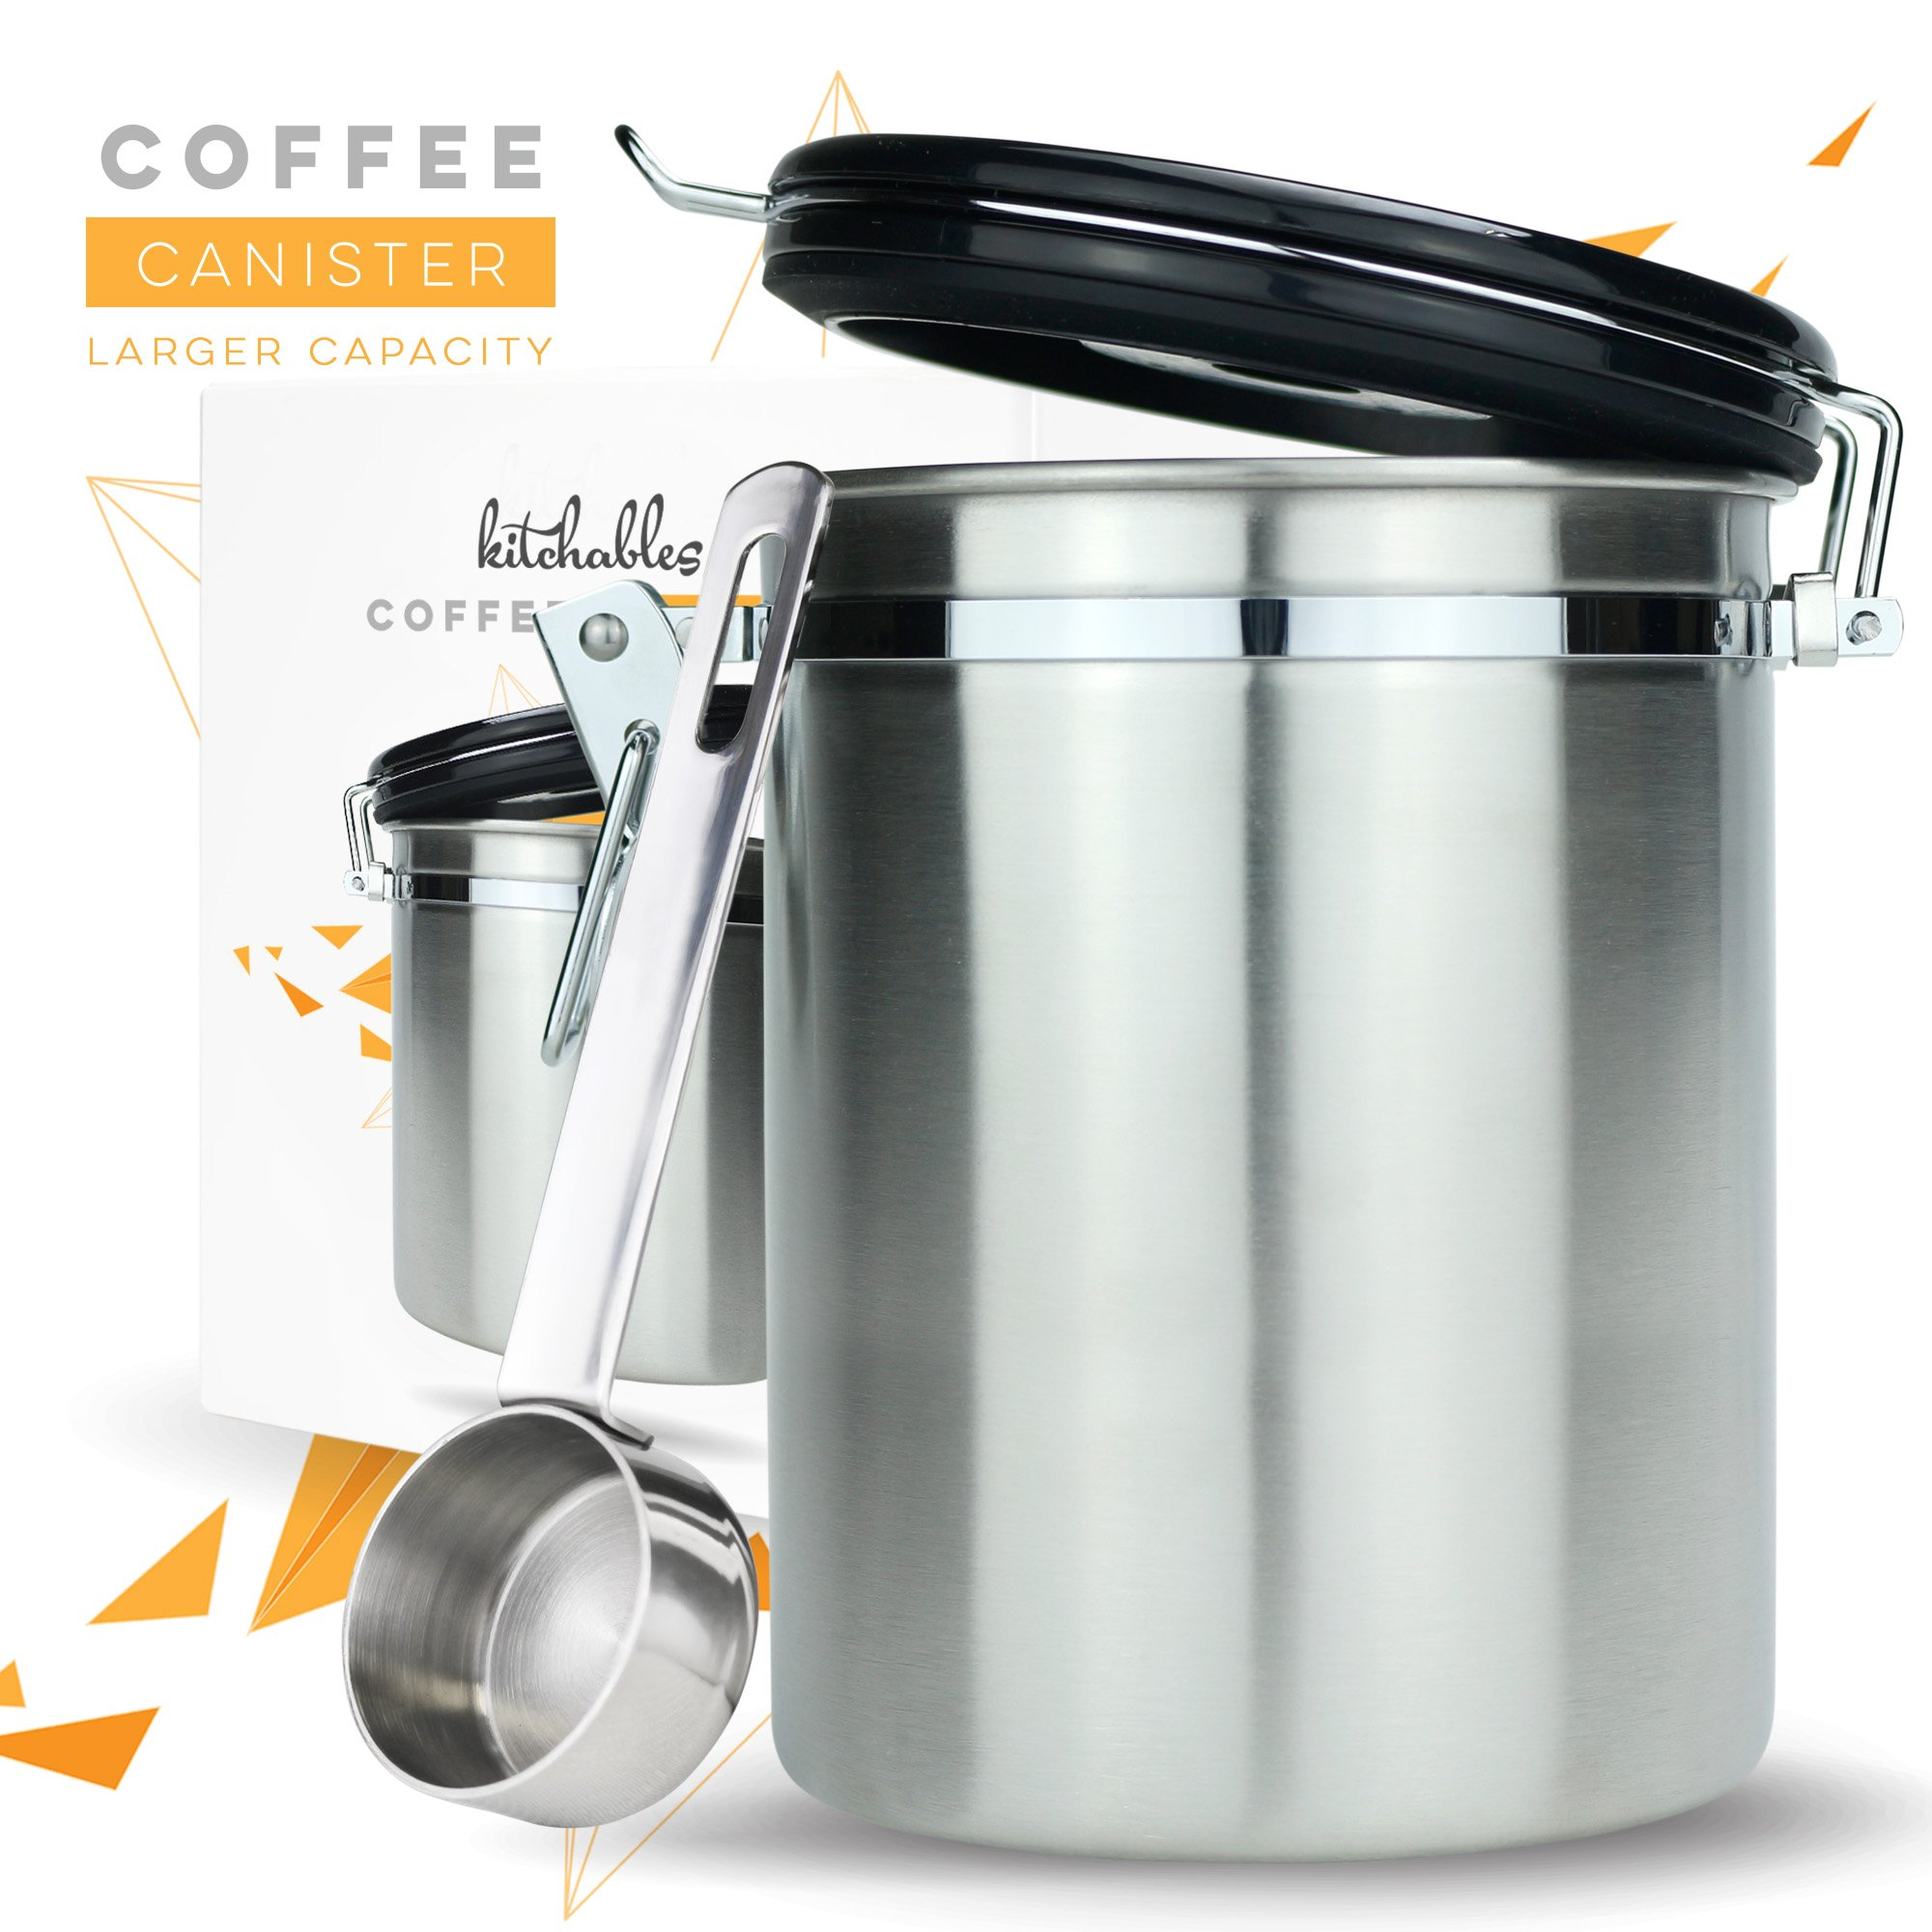 Coffee Canister (Large) Airtight Seal Set with Scoop - Stainless Steel Kitchen Storage Container with AirFresh Valve Technology (Vienna Silver)